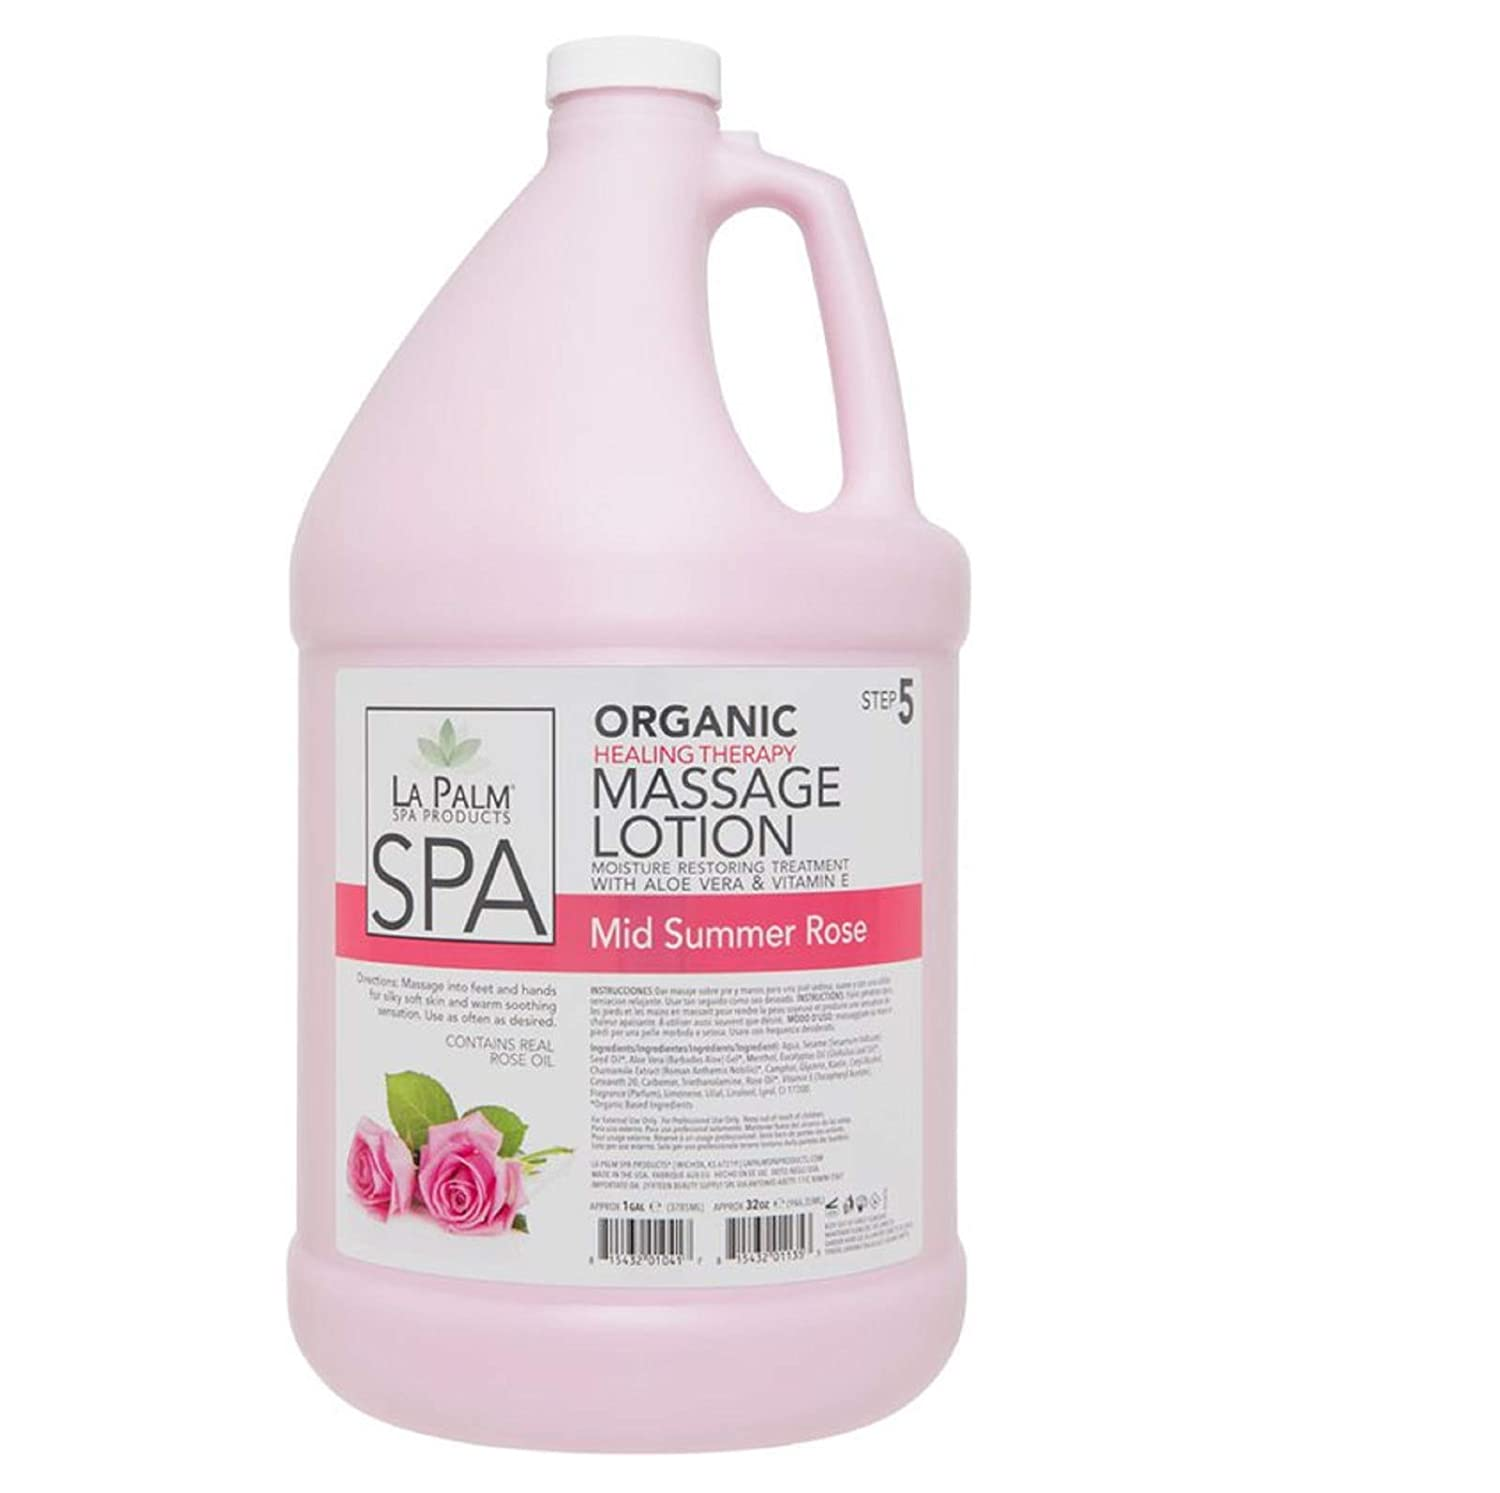 Healing Therapy Massage Lotion - Mid Summer Rose - 1 Gallon Refill Size